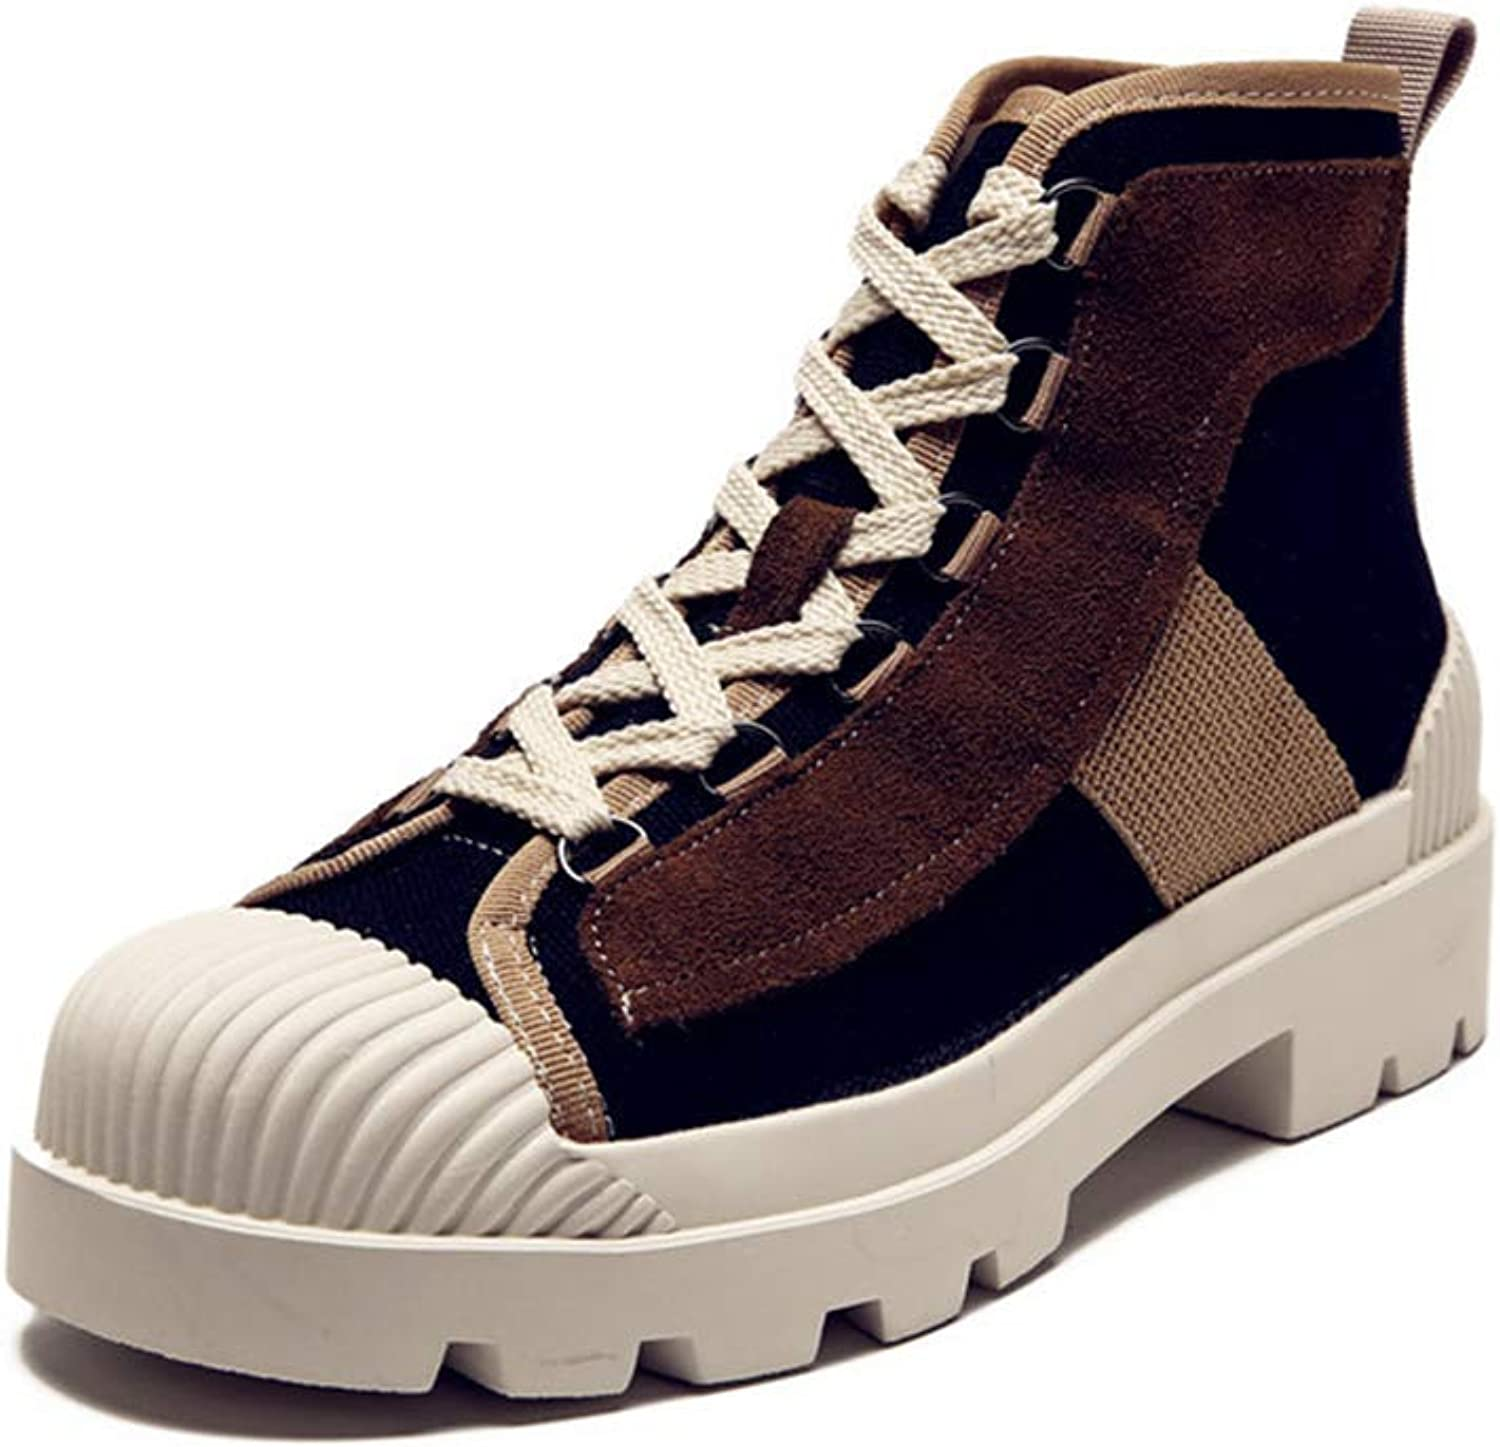 Excellent.c Women's shoes with Sneakers Casual shoes Canvas shoes